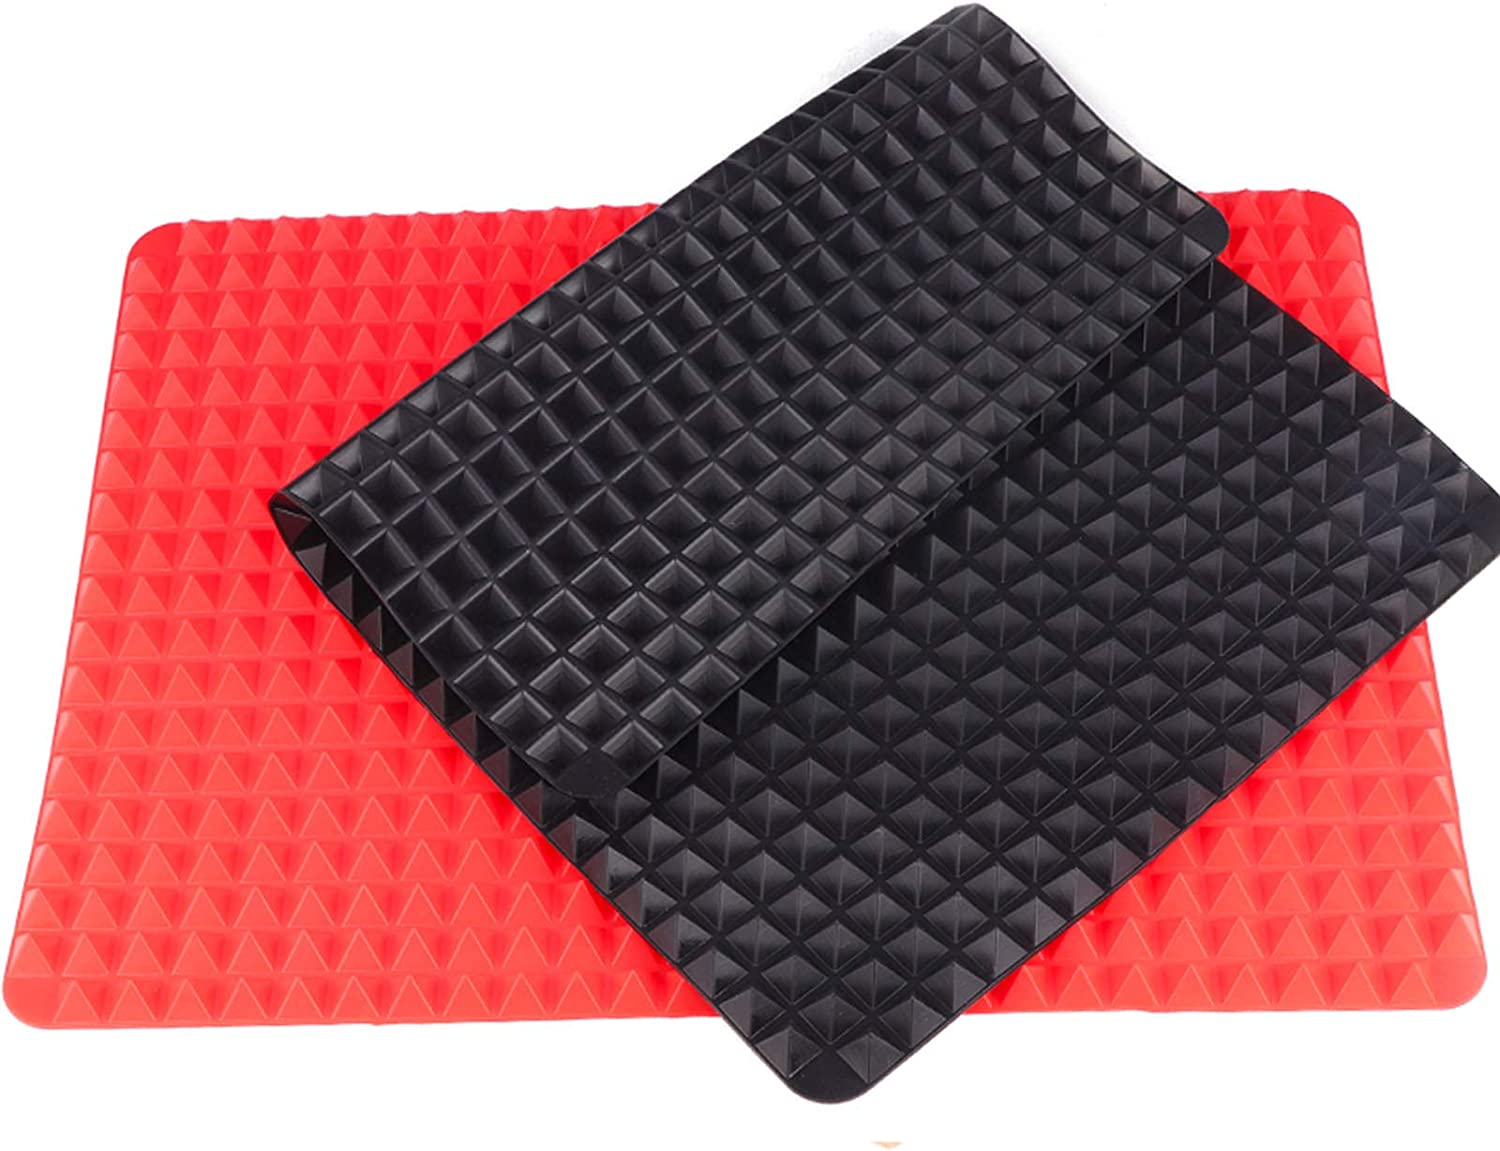 Silicone Pyramid Baking Mat Cooking Pan Value Pack, Non-Stick Healthy Food Grade Fat Reducing Sheet For Oven Grilling BBQ (2 Pack Large-Red&Black)